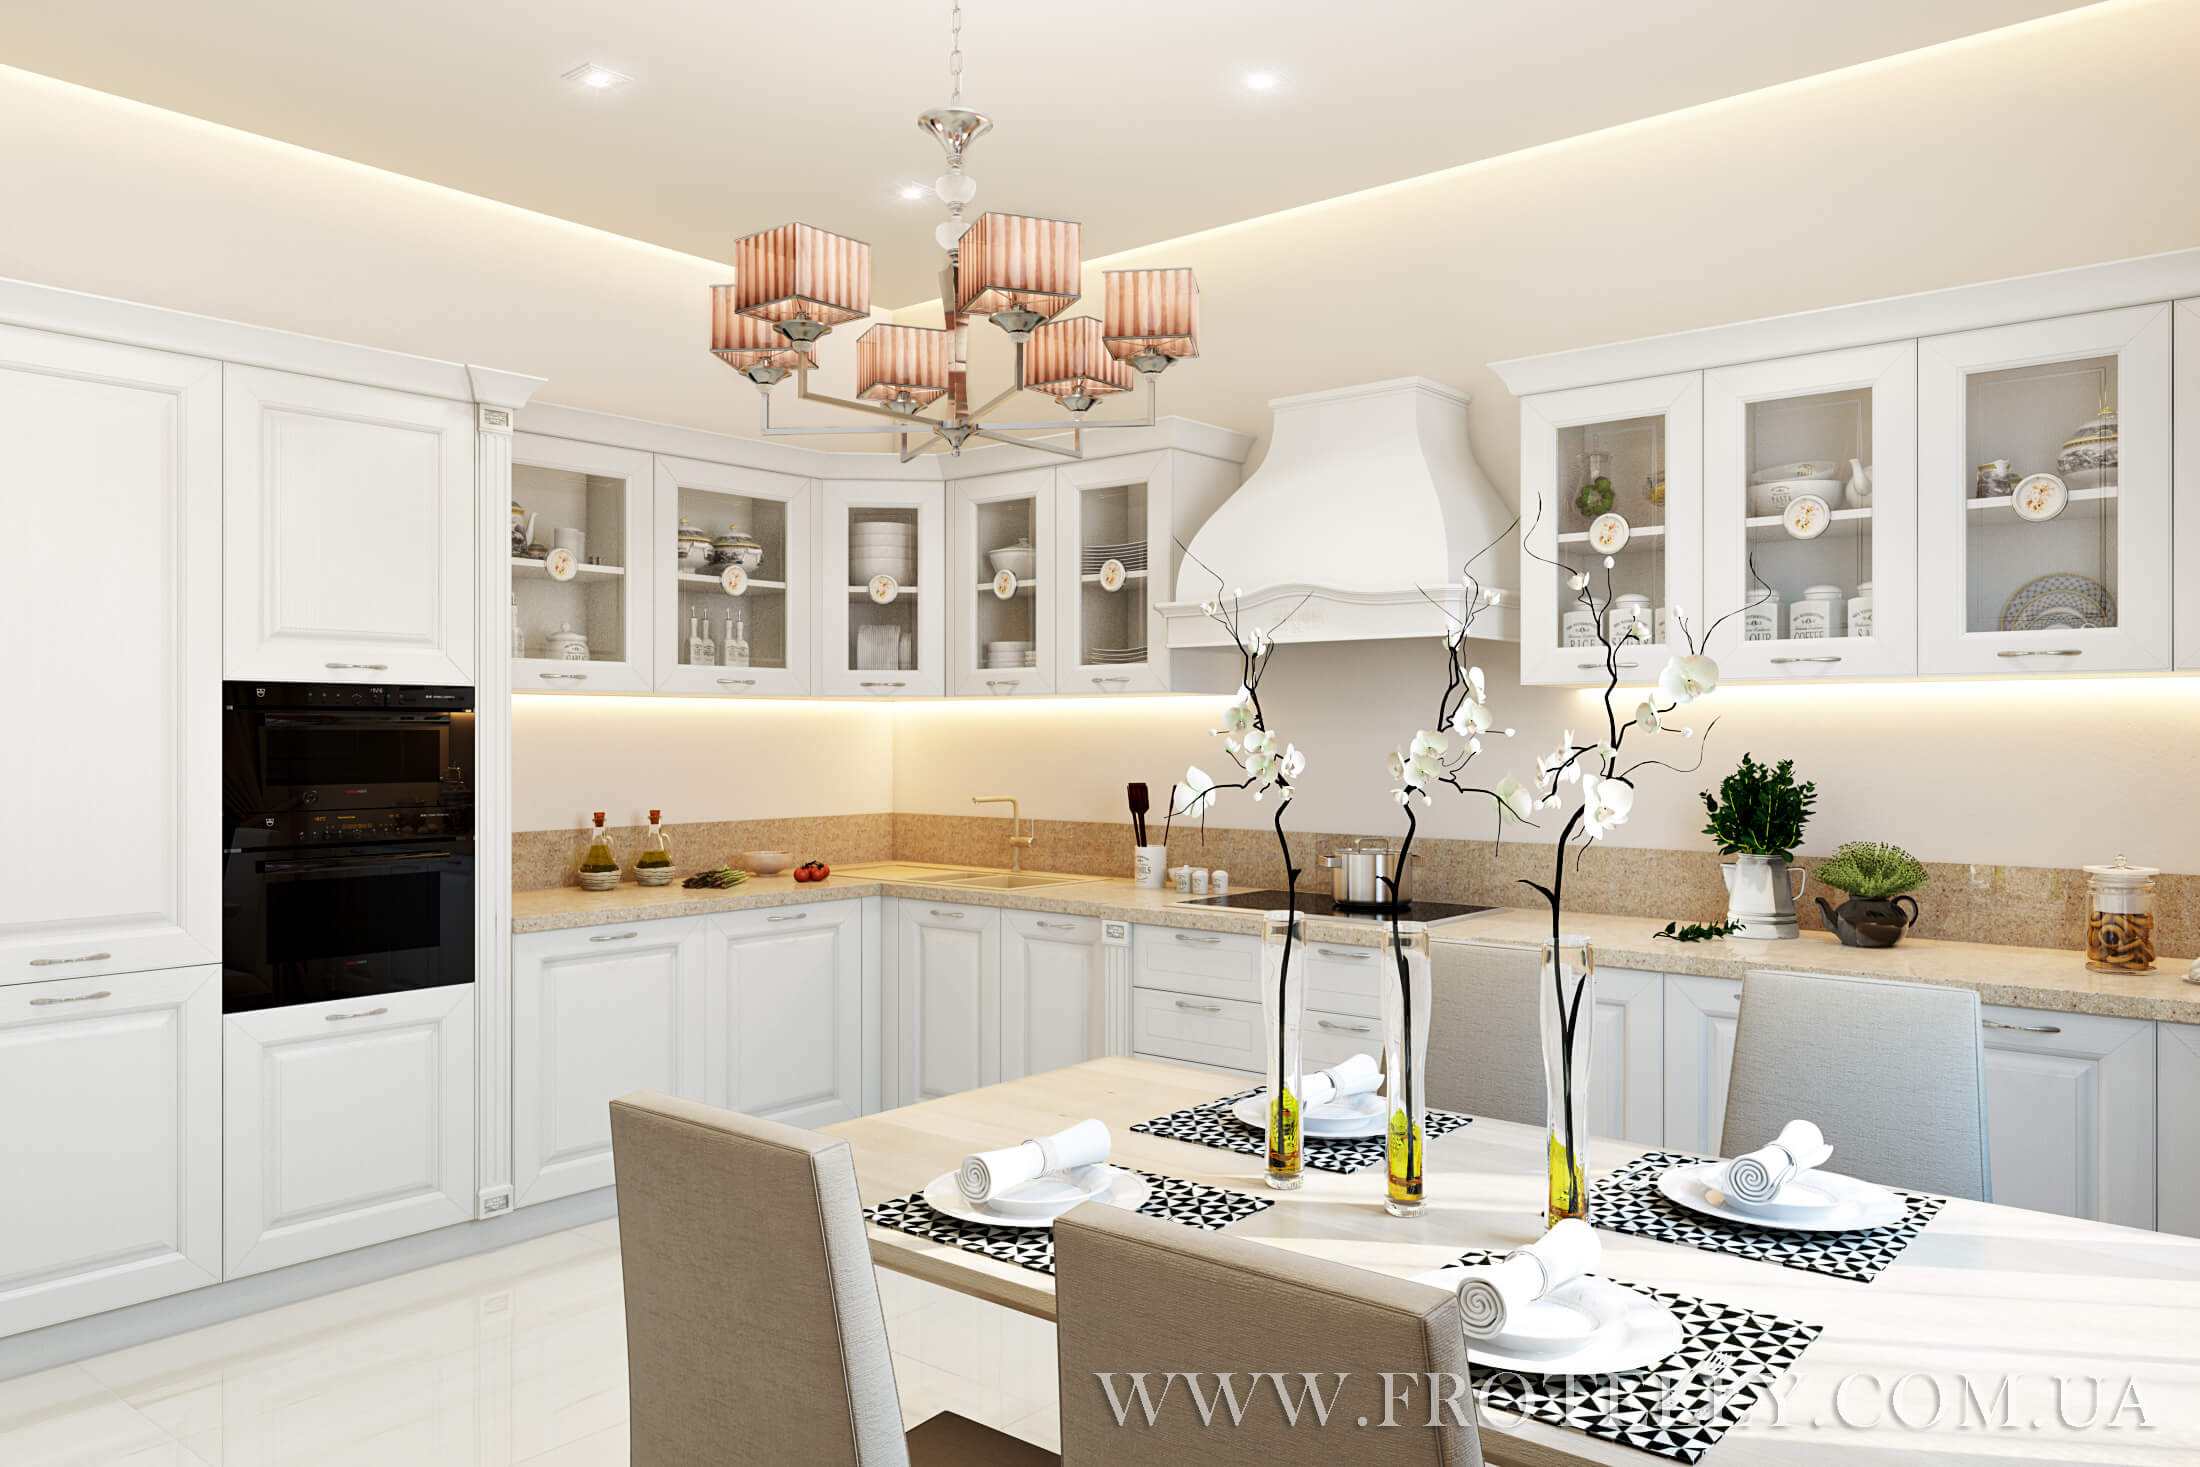 Home Cucine Regale White